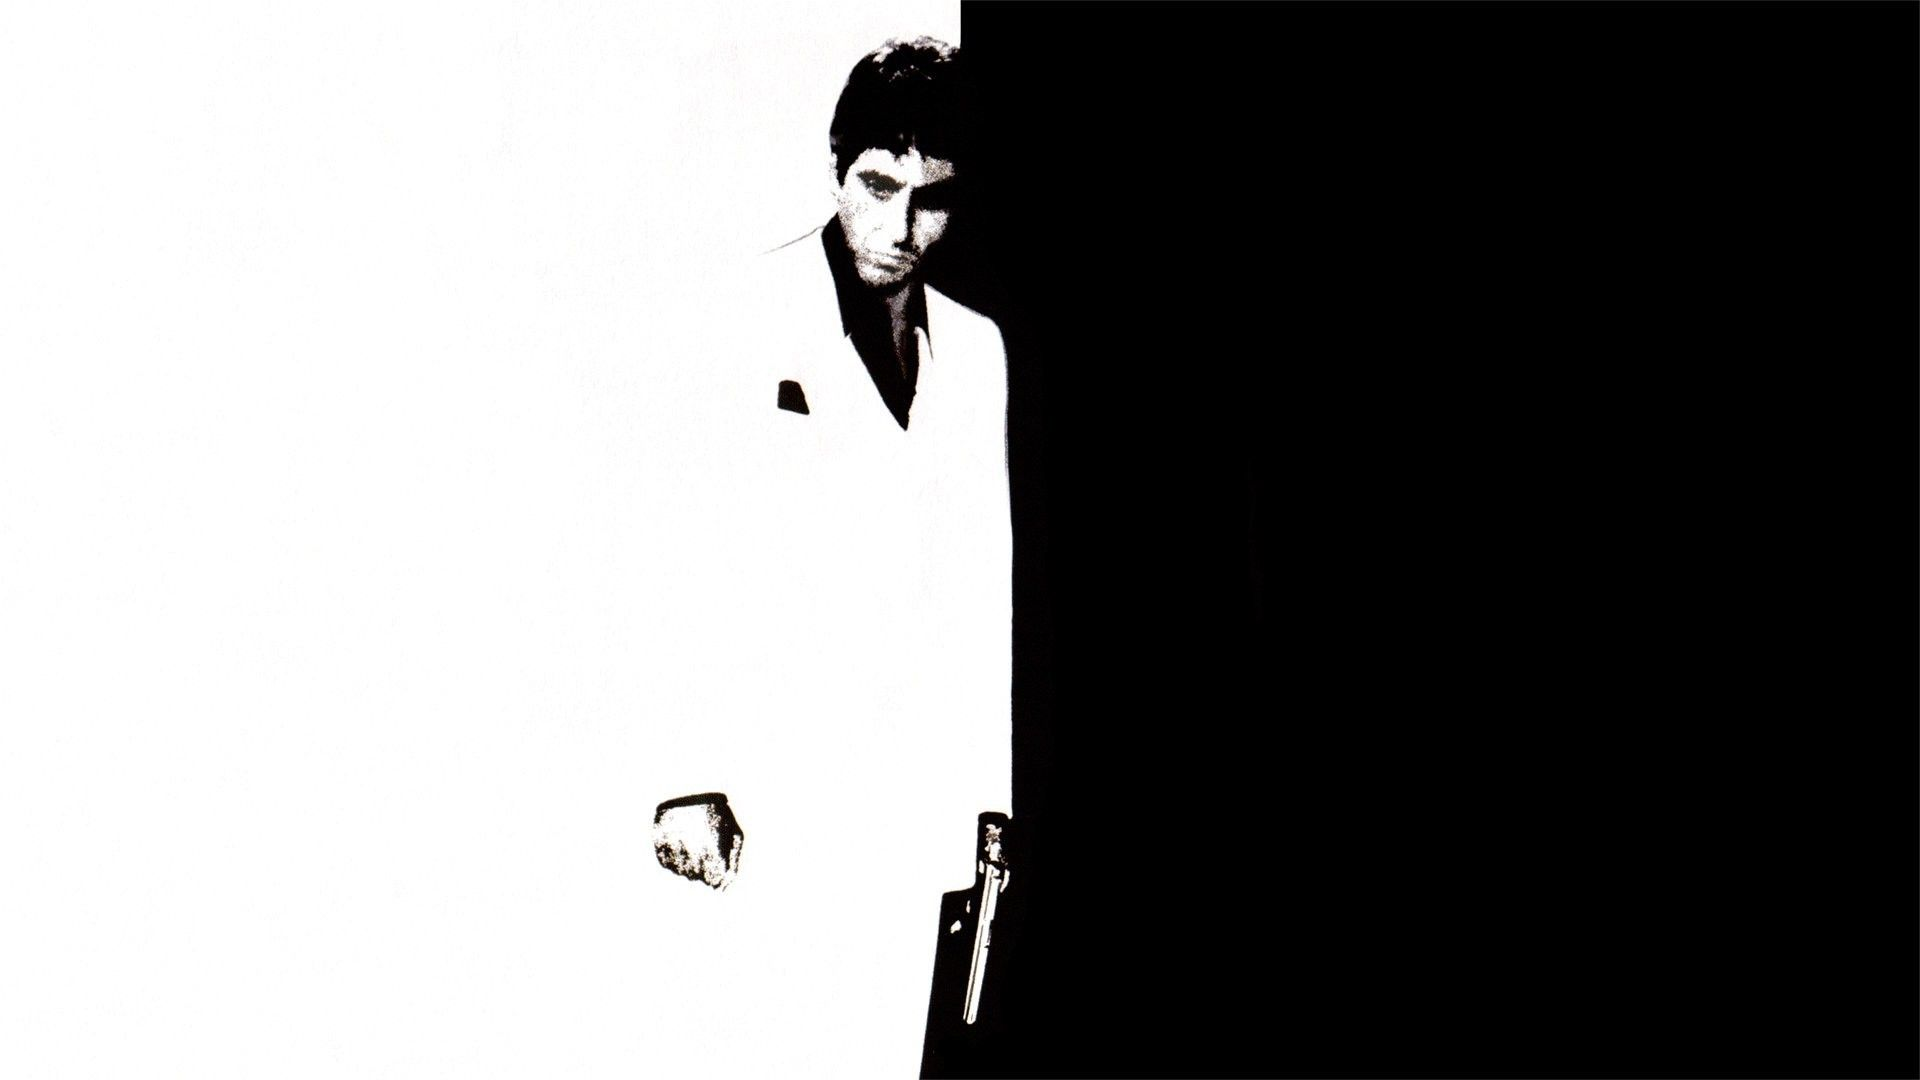 Al pacino scarface wallpapers top free al pacino - Scarface background ...